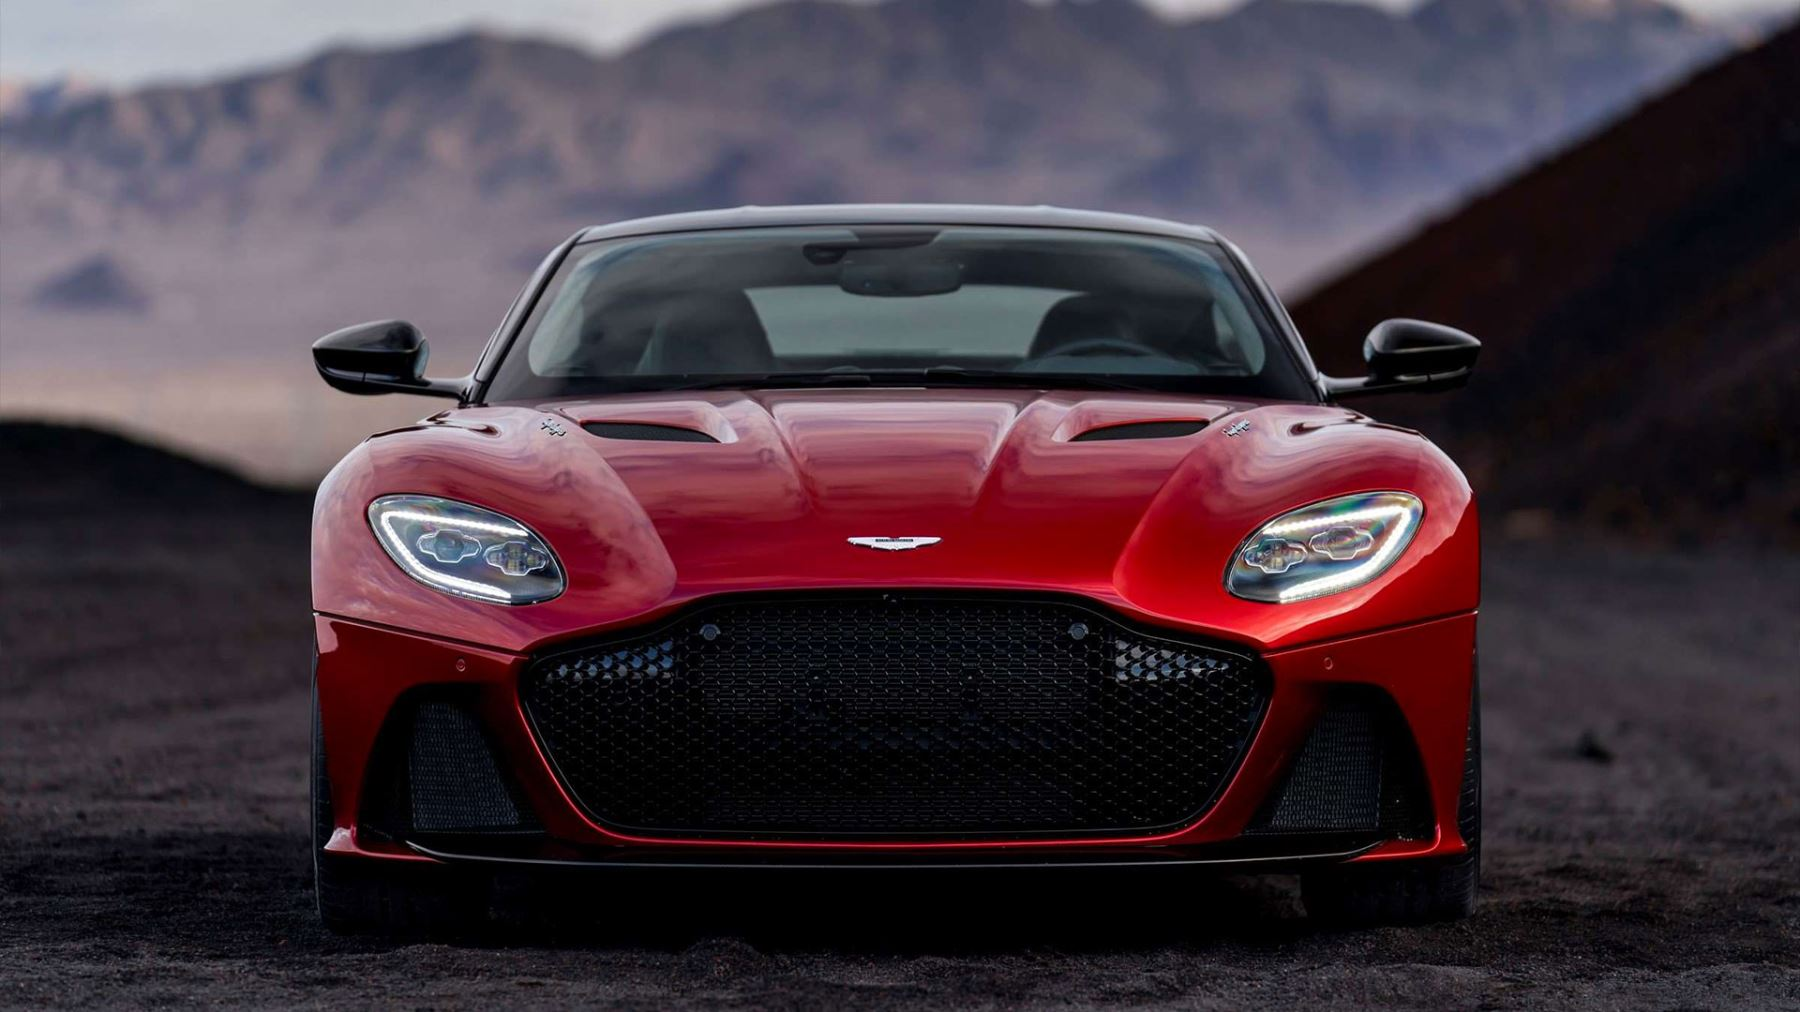 Aston Martin DBS Superleggera - Beautiful is Absolute image 2